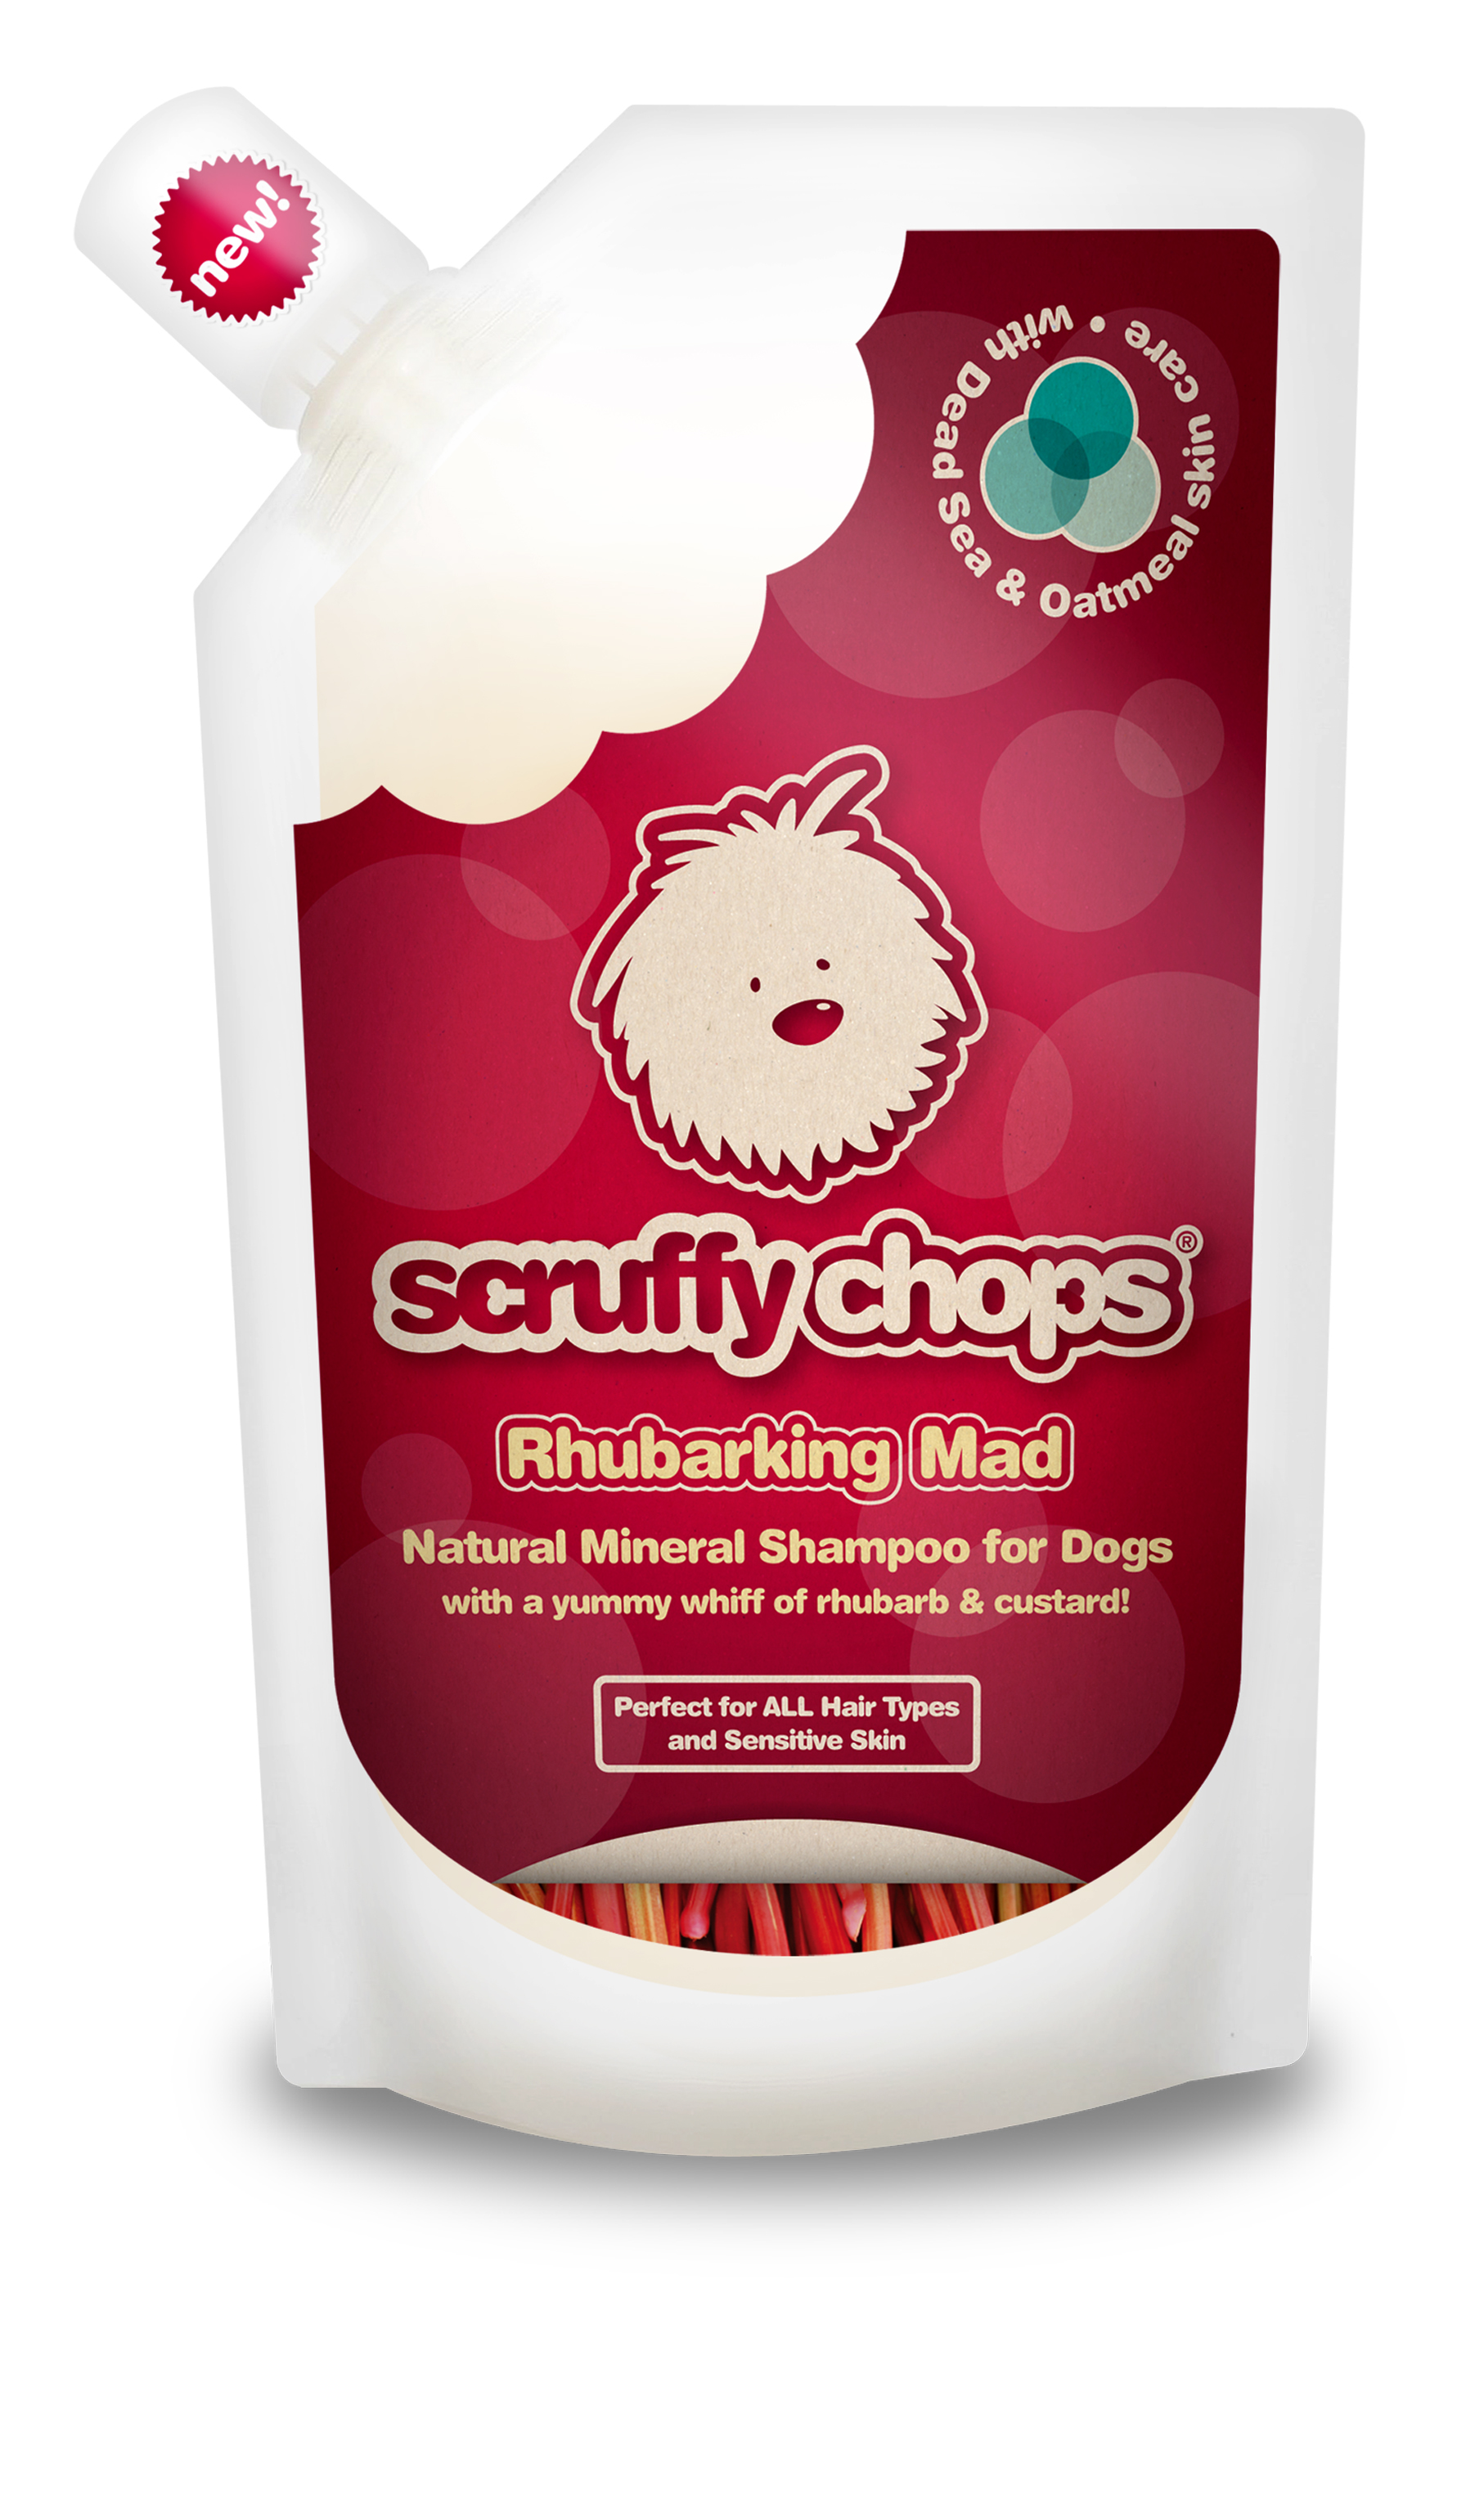 Rhubarking mad shampoo 250ml new